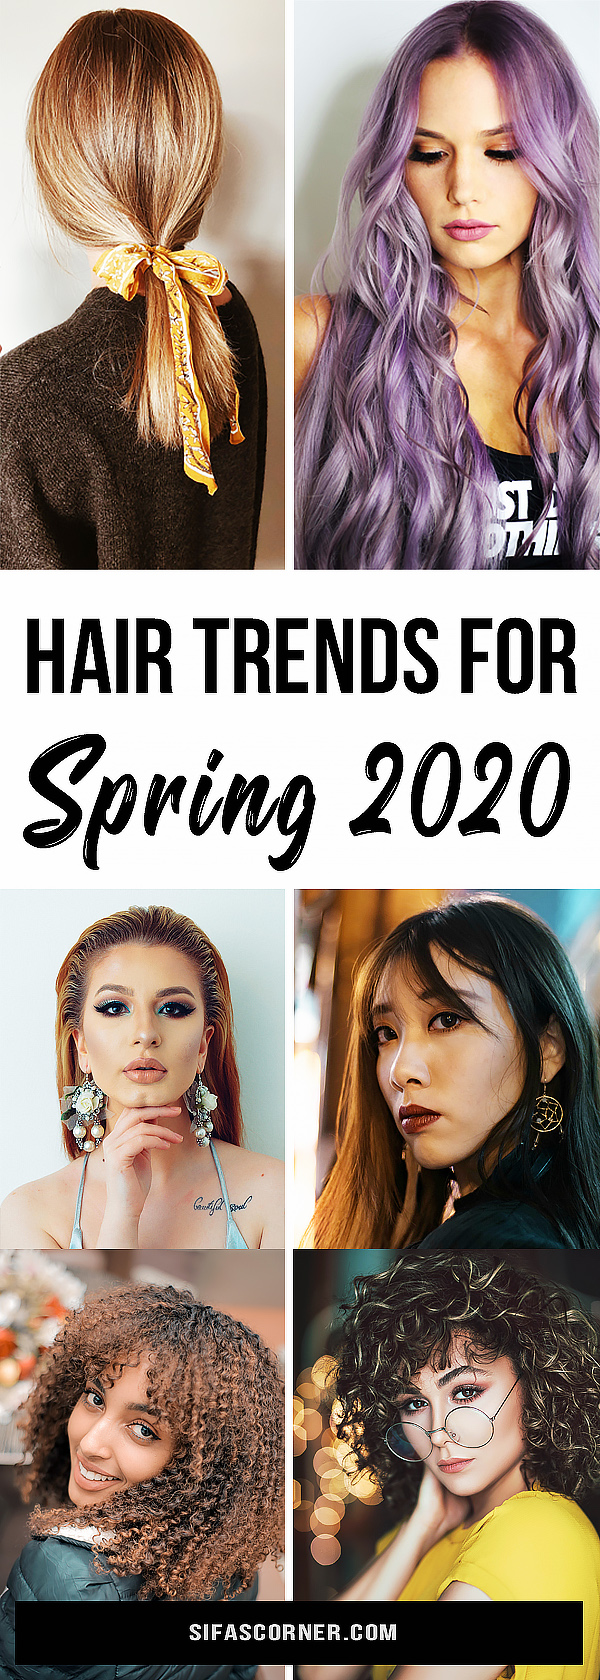 Spring 2020 Hair Trends